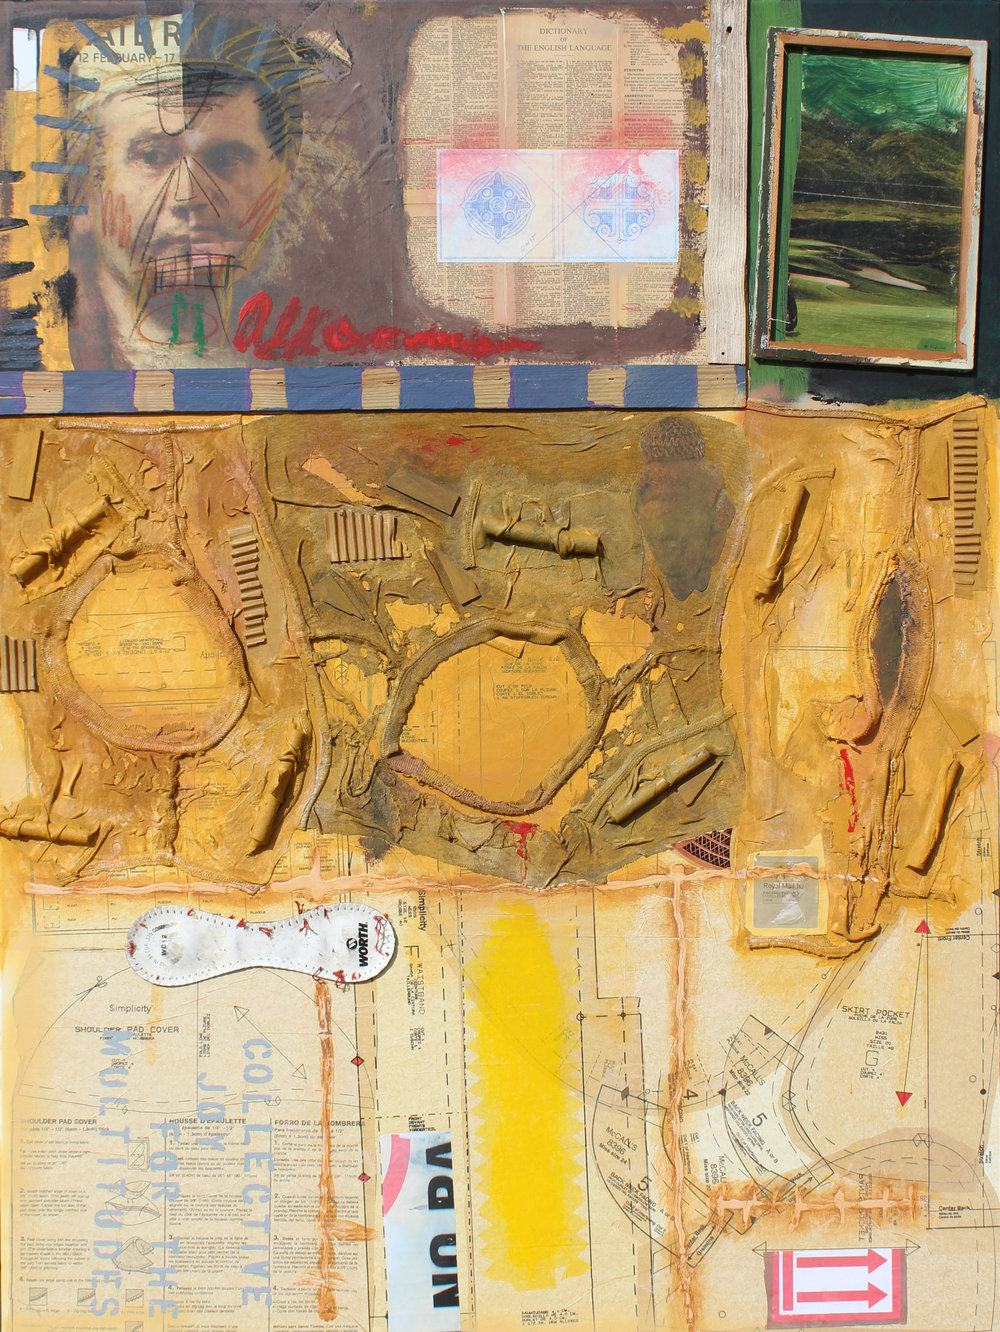 James Kent,  Collective Joy for the Multitudes,  Mixed media collage